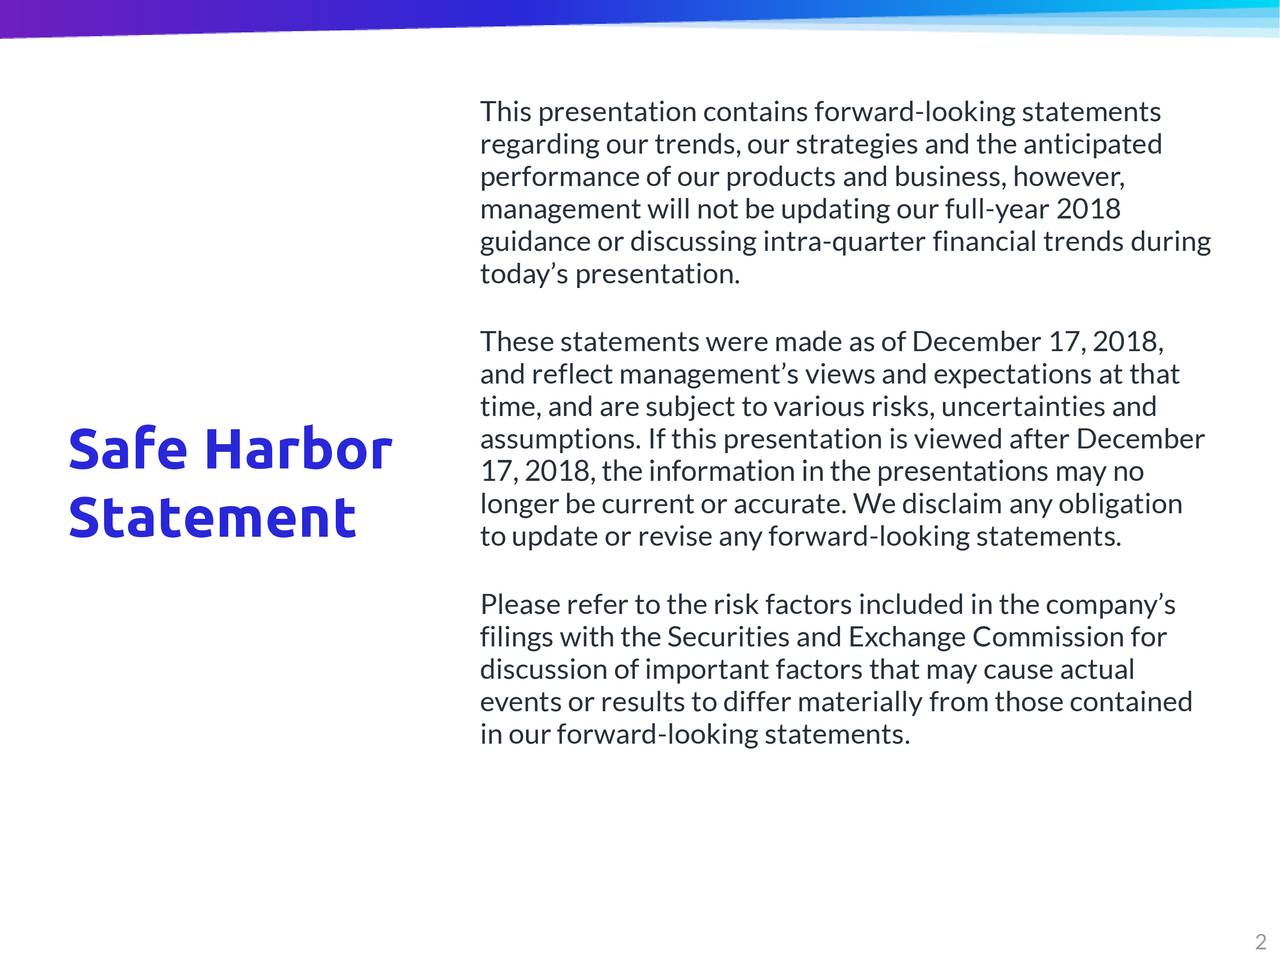 regarding our trends, our strategies and the anticipated performance of our products and business, however, management will not be updating our full-year 2018 guidance or discussing intra-quarter financial trends during today's presentation. These statements were made as of December 17, 2018, and reflect management's views and expectations at that time, and are subject to various risks, uncertainties and assumptions. If this presentation is viewed after December Safe Harbor 17, 2018, the information in the presentations may no longer be current or accurate. We disclaim any obligation Statement to update or revise any forward-looking statements. Please refer to the risk factors included in the company's filings with the Securities and Exchange Commission for discussion of important factors that may cause actual events or results to differ materially from those contained in our forward-looking statements.